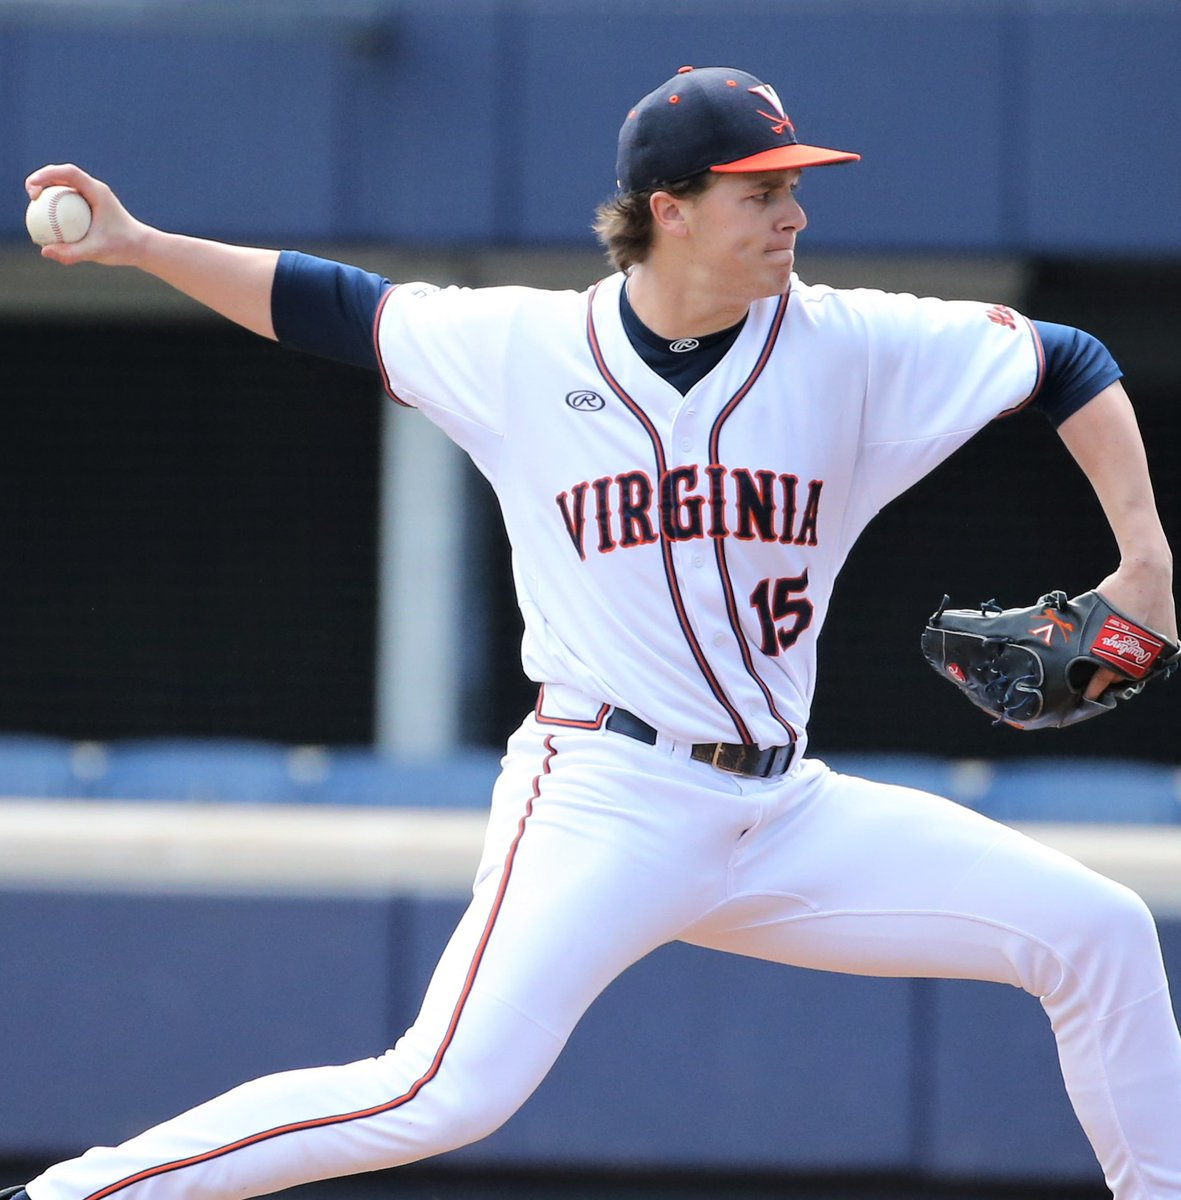 Banner day at the ballpark for the Cavalier offense! Check out some 📸 from today's win! 🔗: wahoowa.net/3cKMPNX